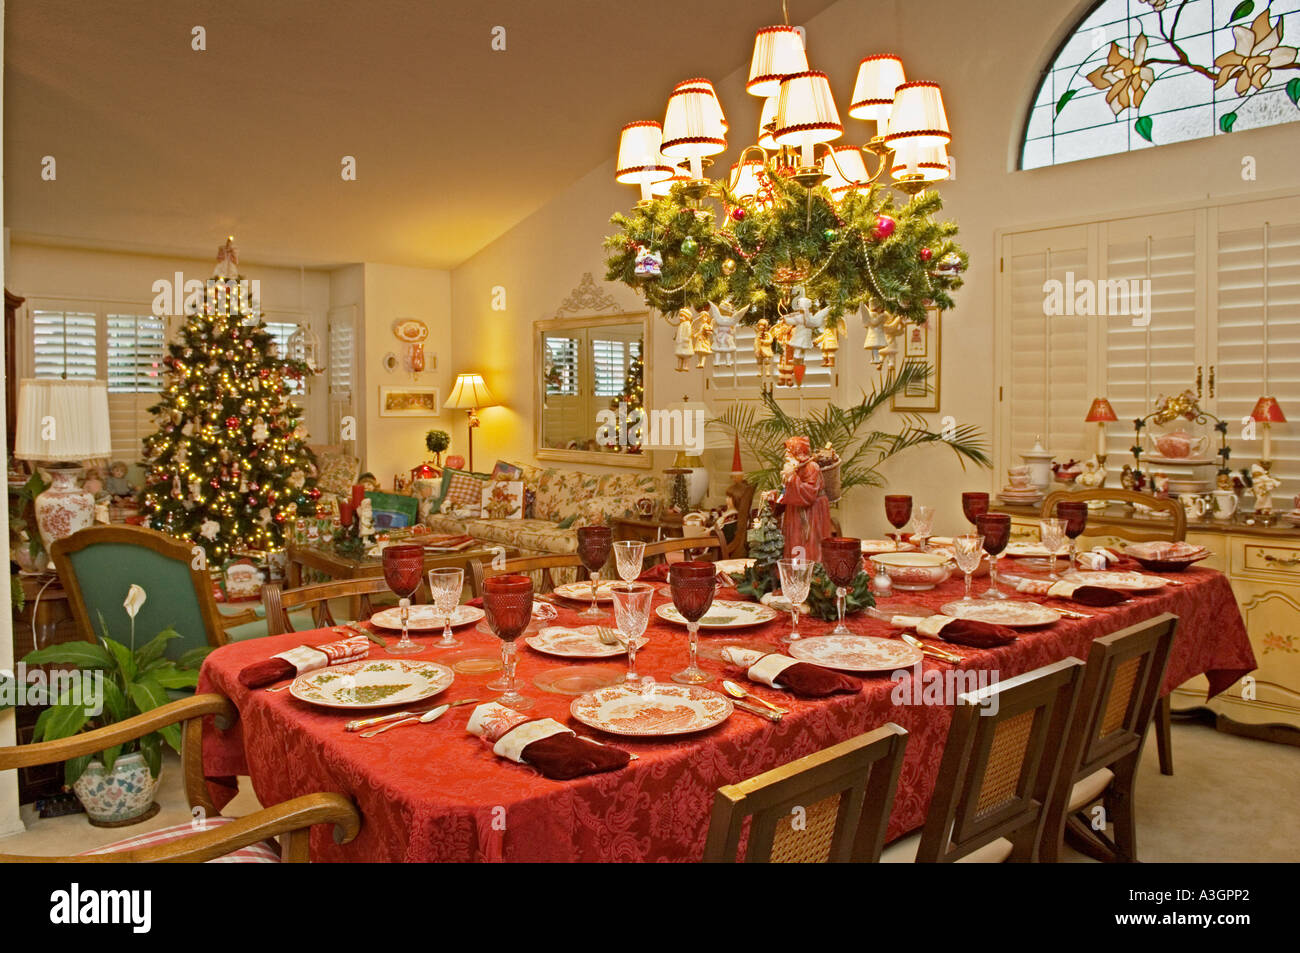 Dining room table set for Christmas dinner in living room of upscale house  in southern California